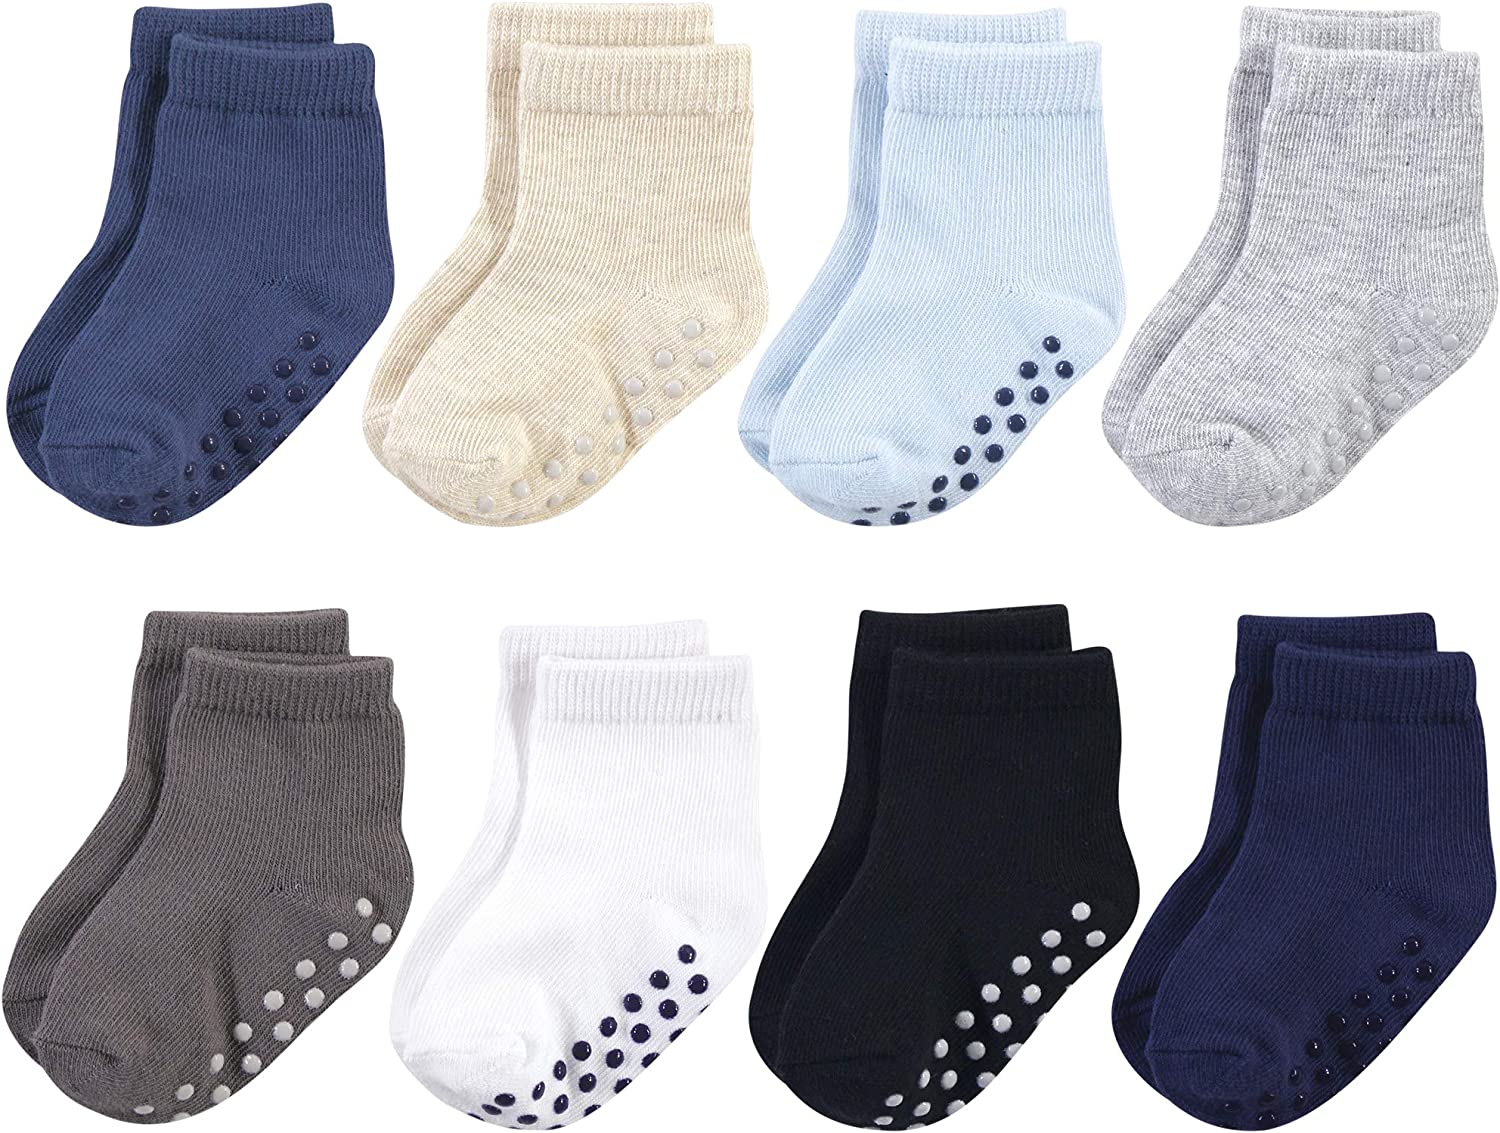 Touched by Nature Baby Organic Cotton Socks with Non-Skid Gripper for Fall Resistance